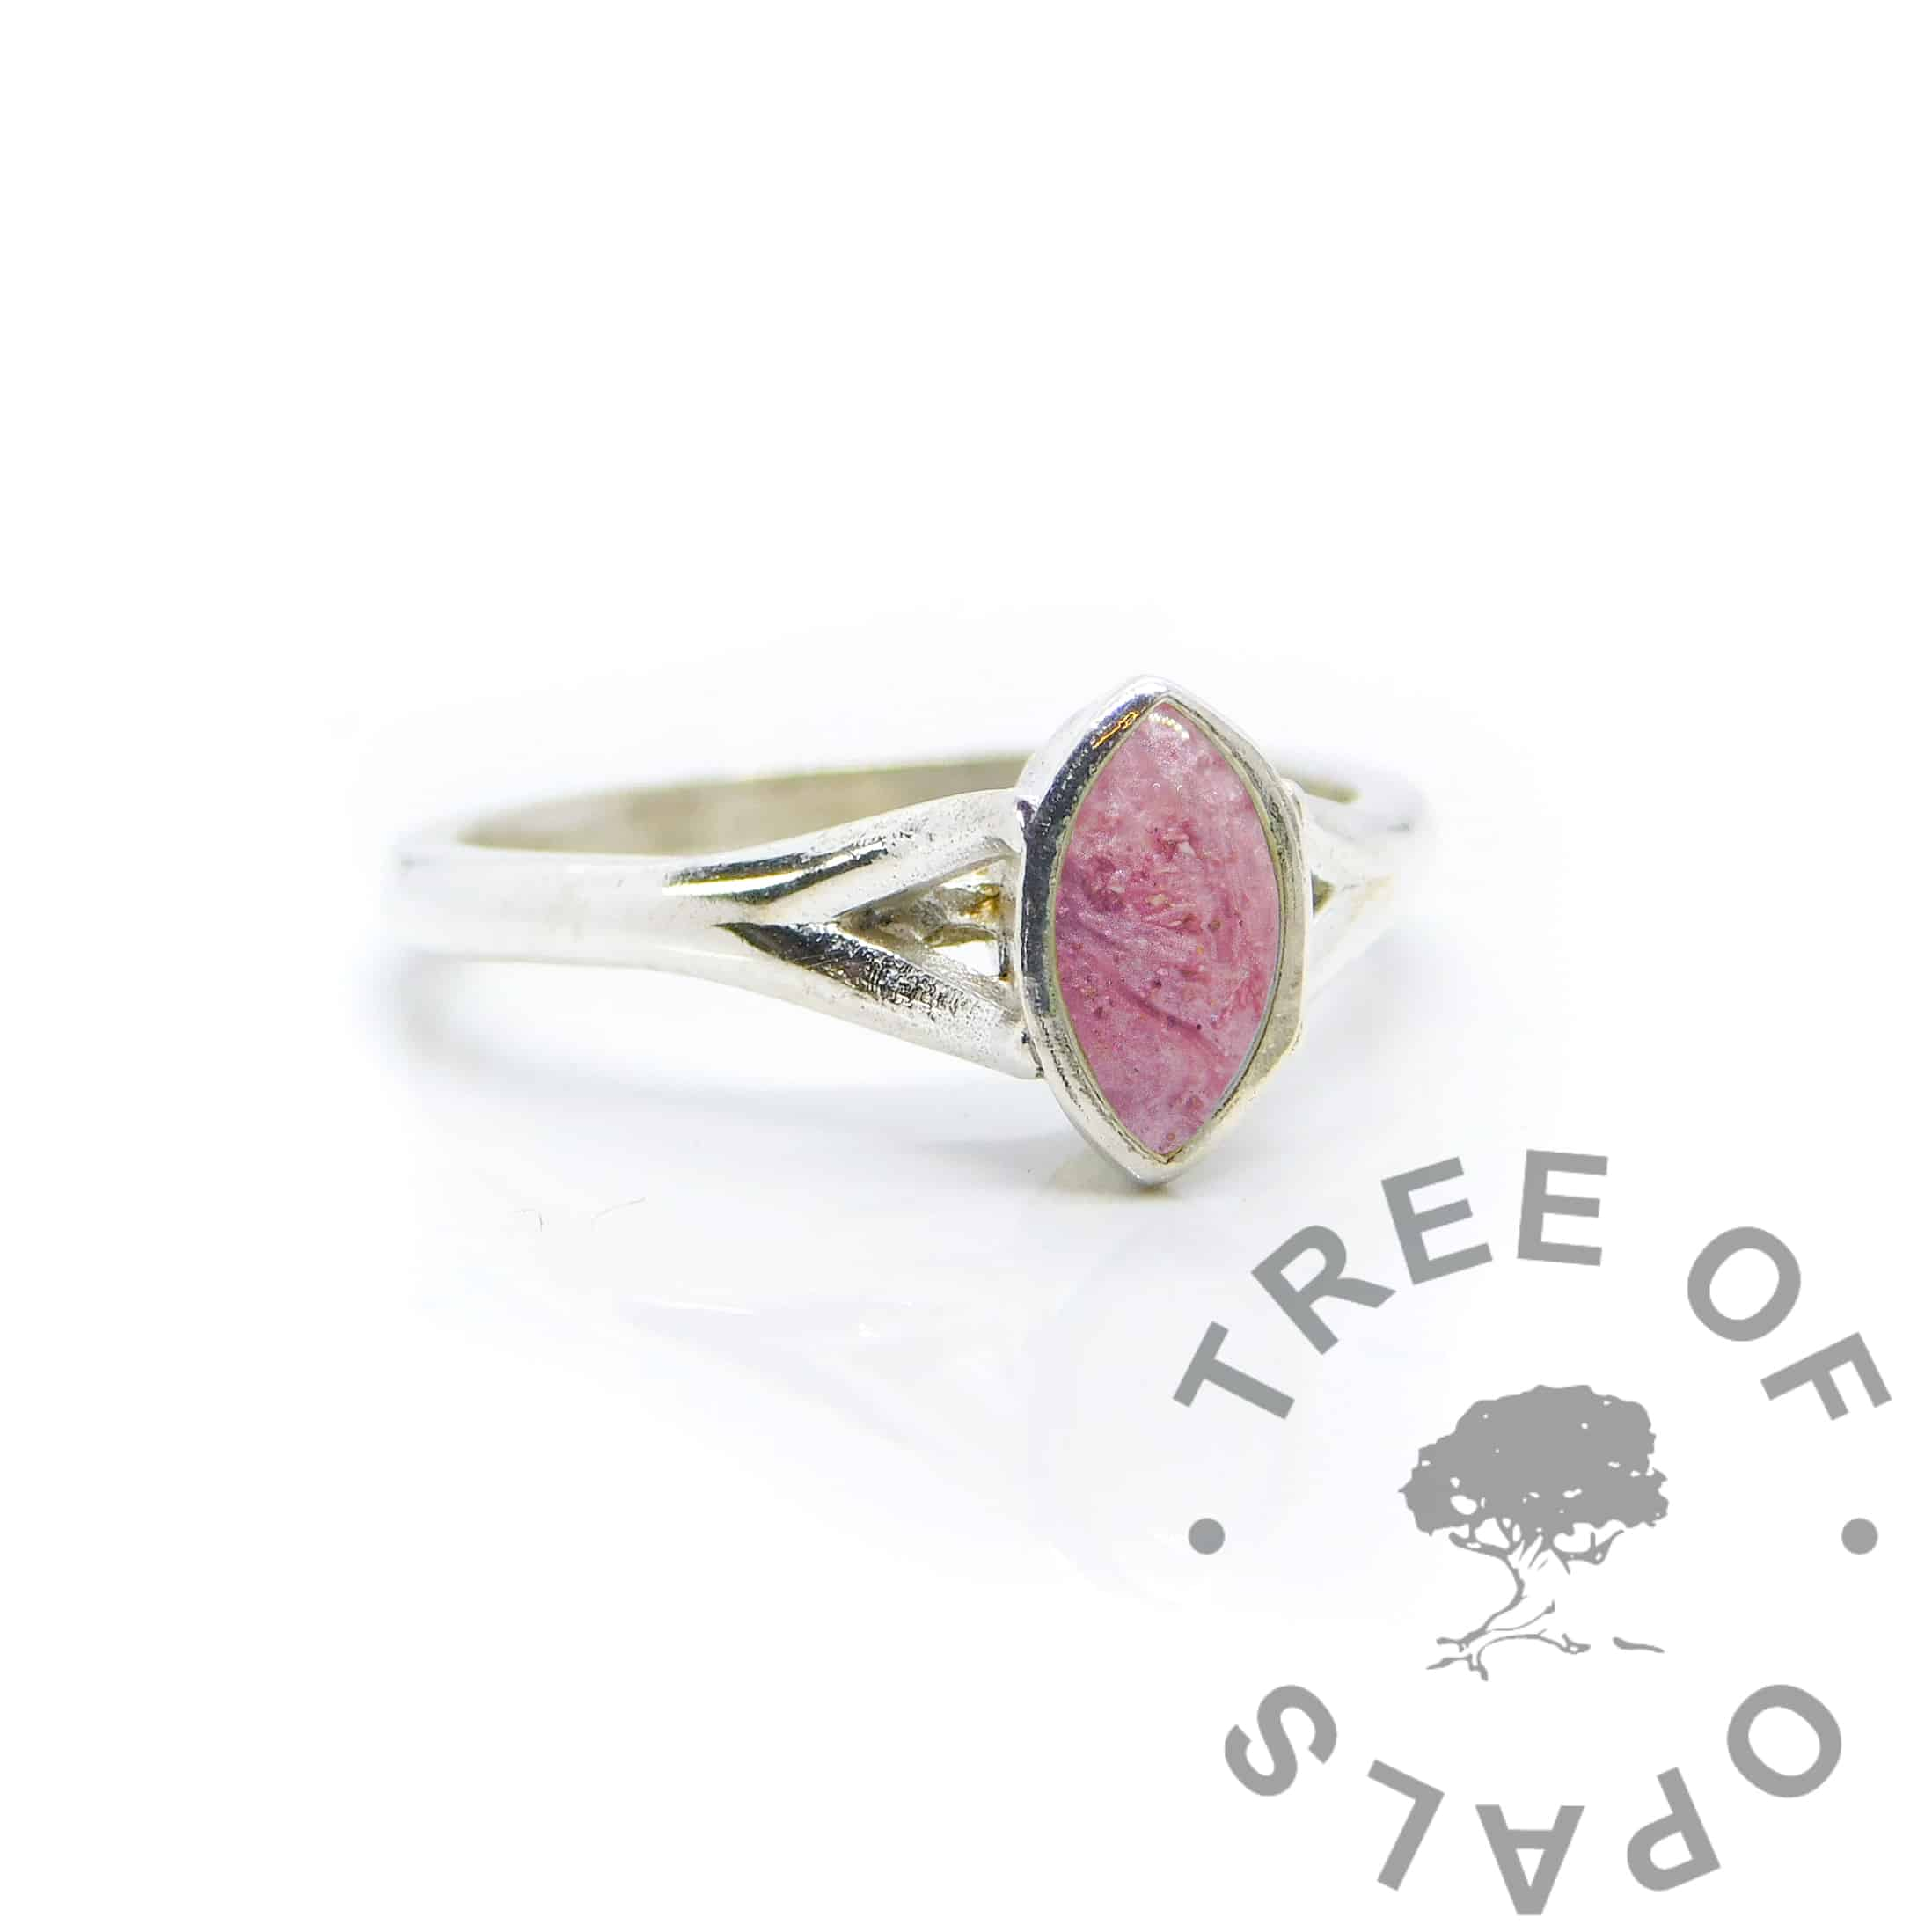 Hannah Cremation Ashes Ring Ashes Hannah Marquise ring, fairy pink resin sparkle mix, solid 935 purity Argentium silver, cast by hand in Scotland. Split shank band, engravable on the inside. 8x4mm marquise setting for filling or fitting a cabochon